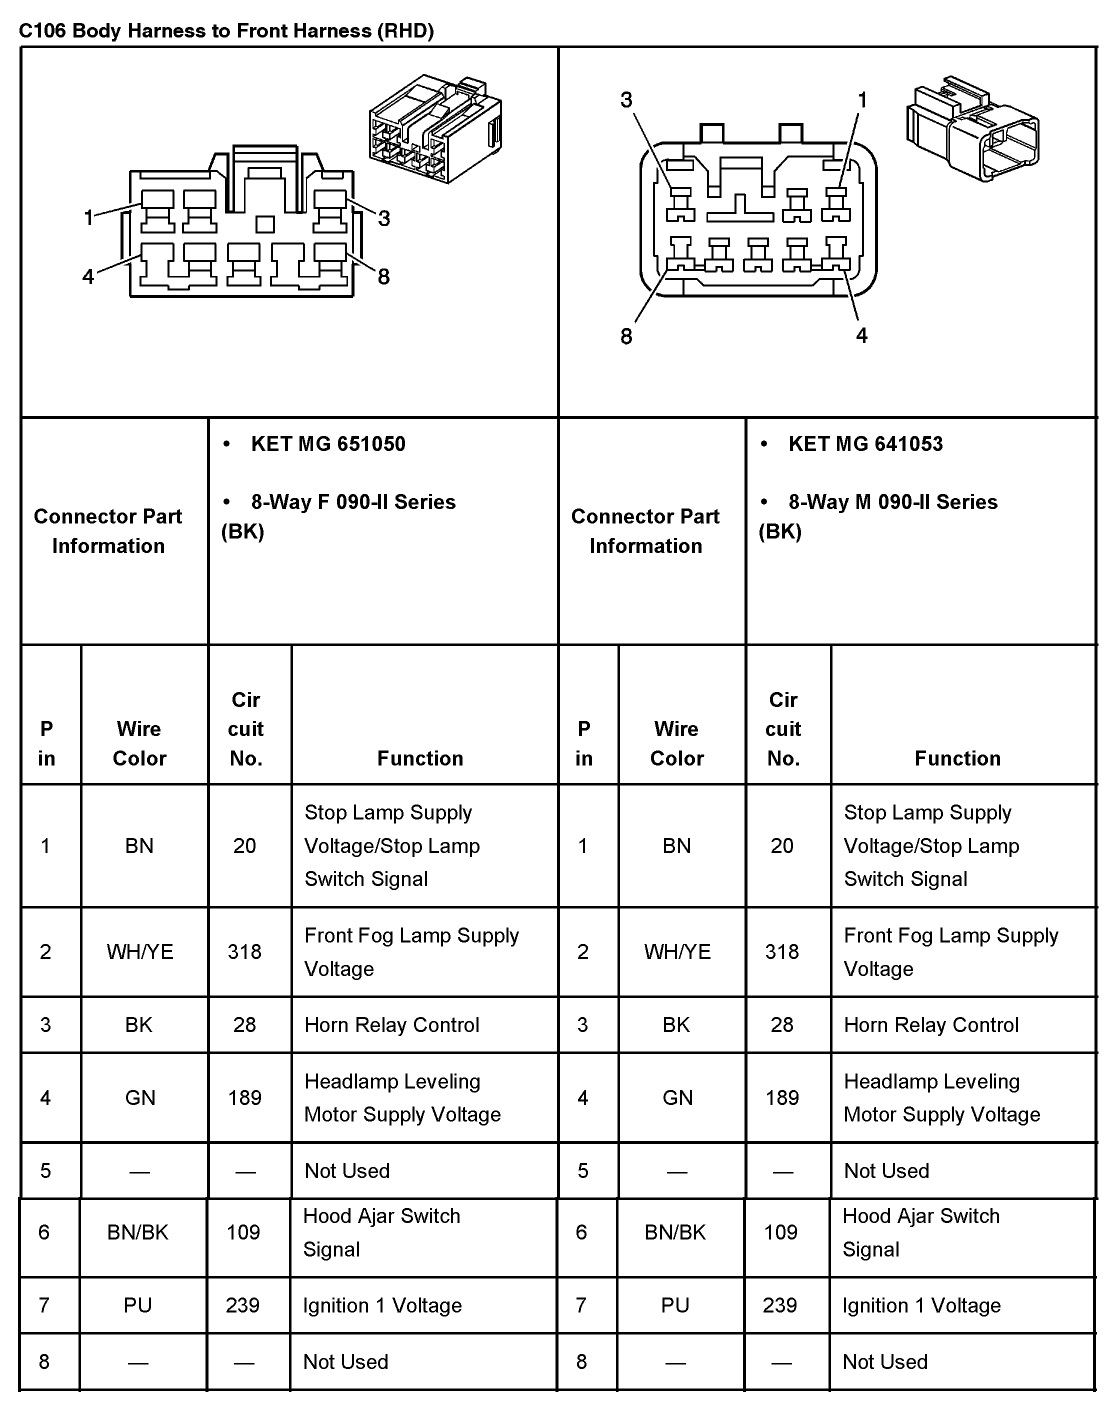 Chevy Aveo Engine Diagram Wiring Library Chevrolet Diagrams Free Download 2005 Master Connector List And